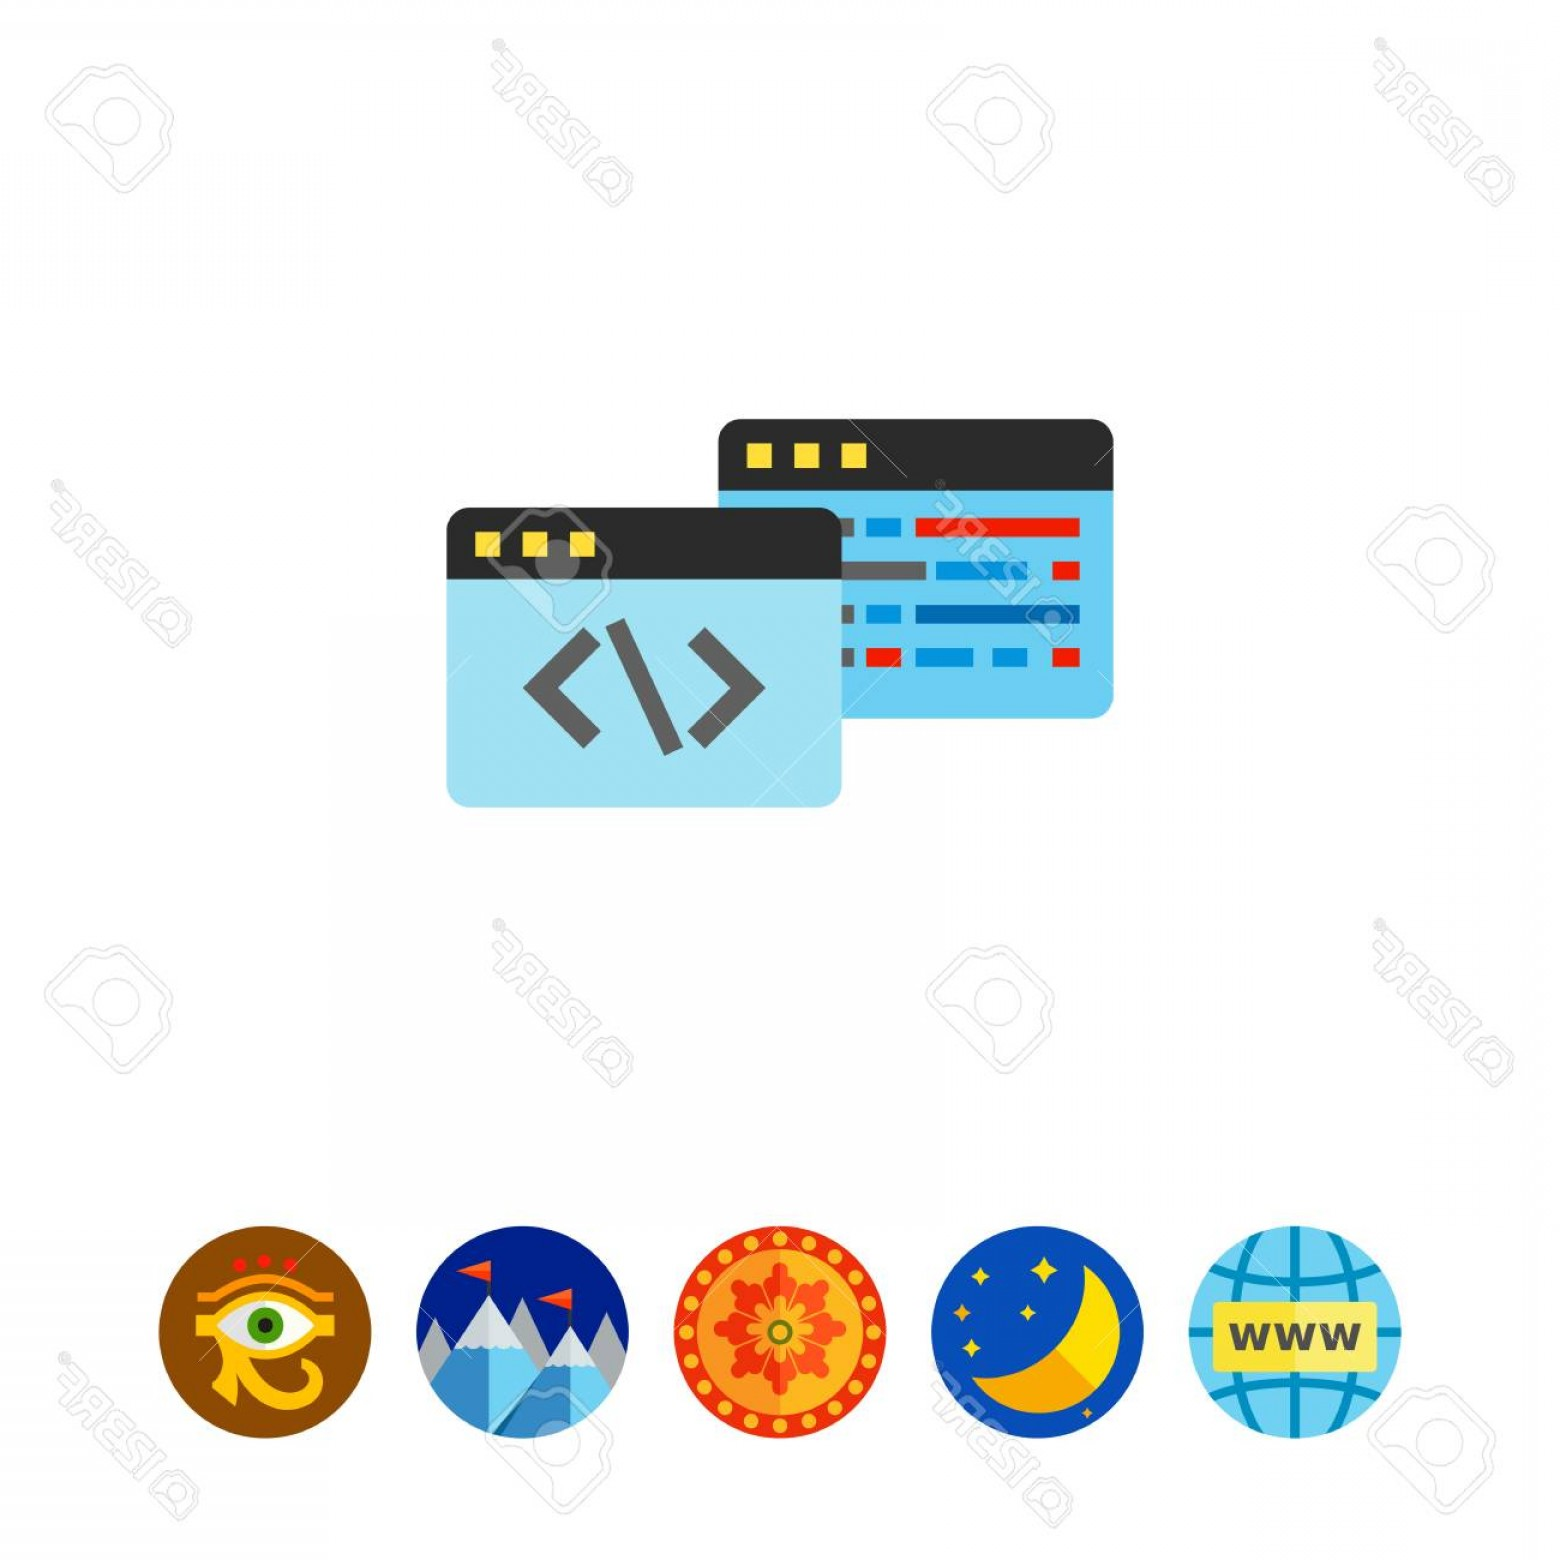 Windows 8 Phone Icon Vector: Photostock Vector Two Windows With Code Symbols Digital Data Algorithm Coding Concept Can Be Used For Topics Like Prog